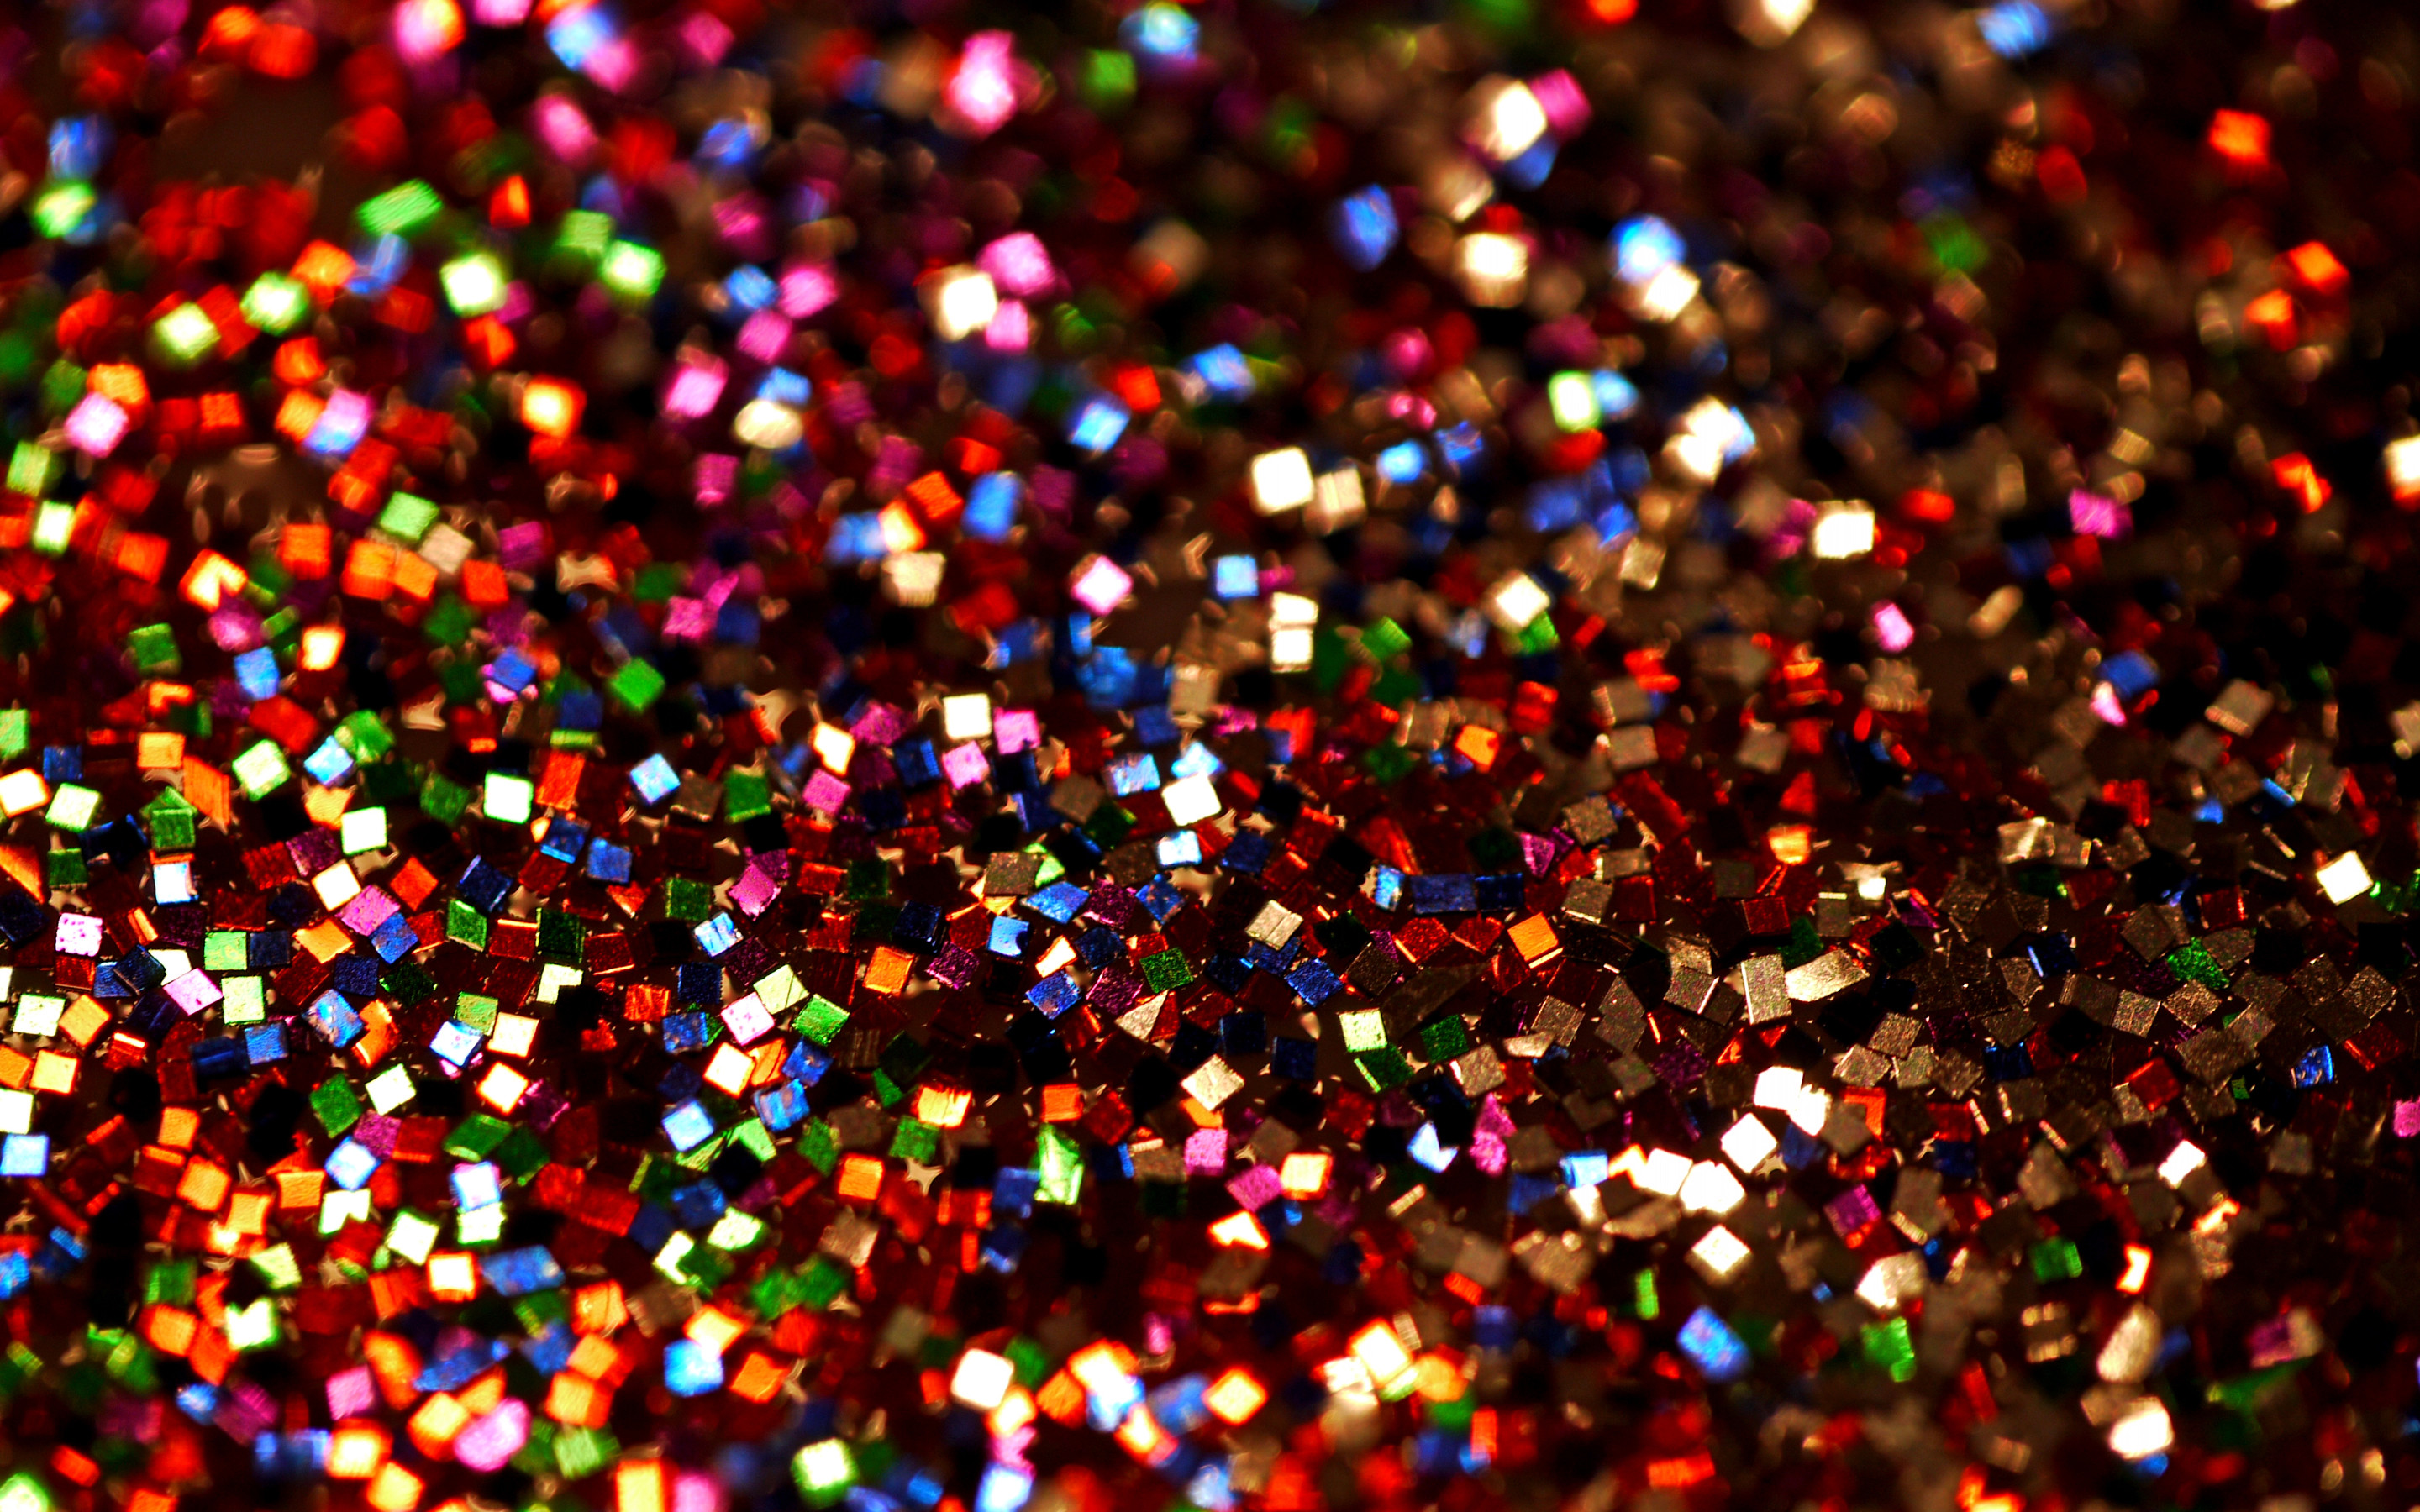 2880x1800 68 HD Glitter Wallpaper For Mobile And Desktop